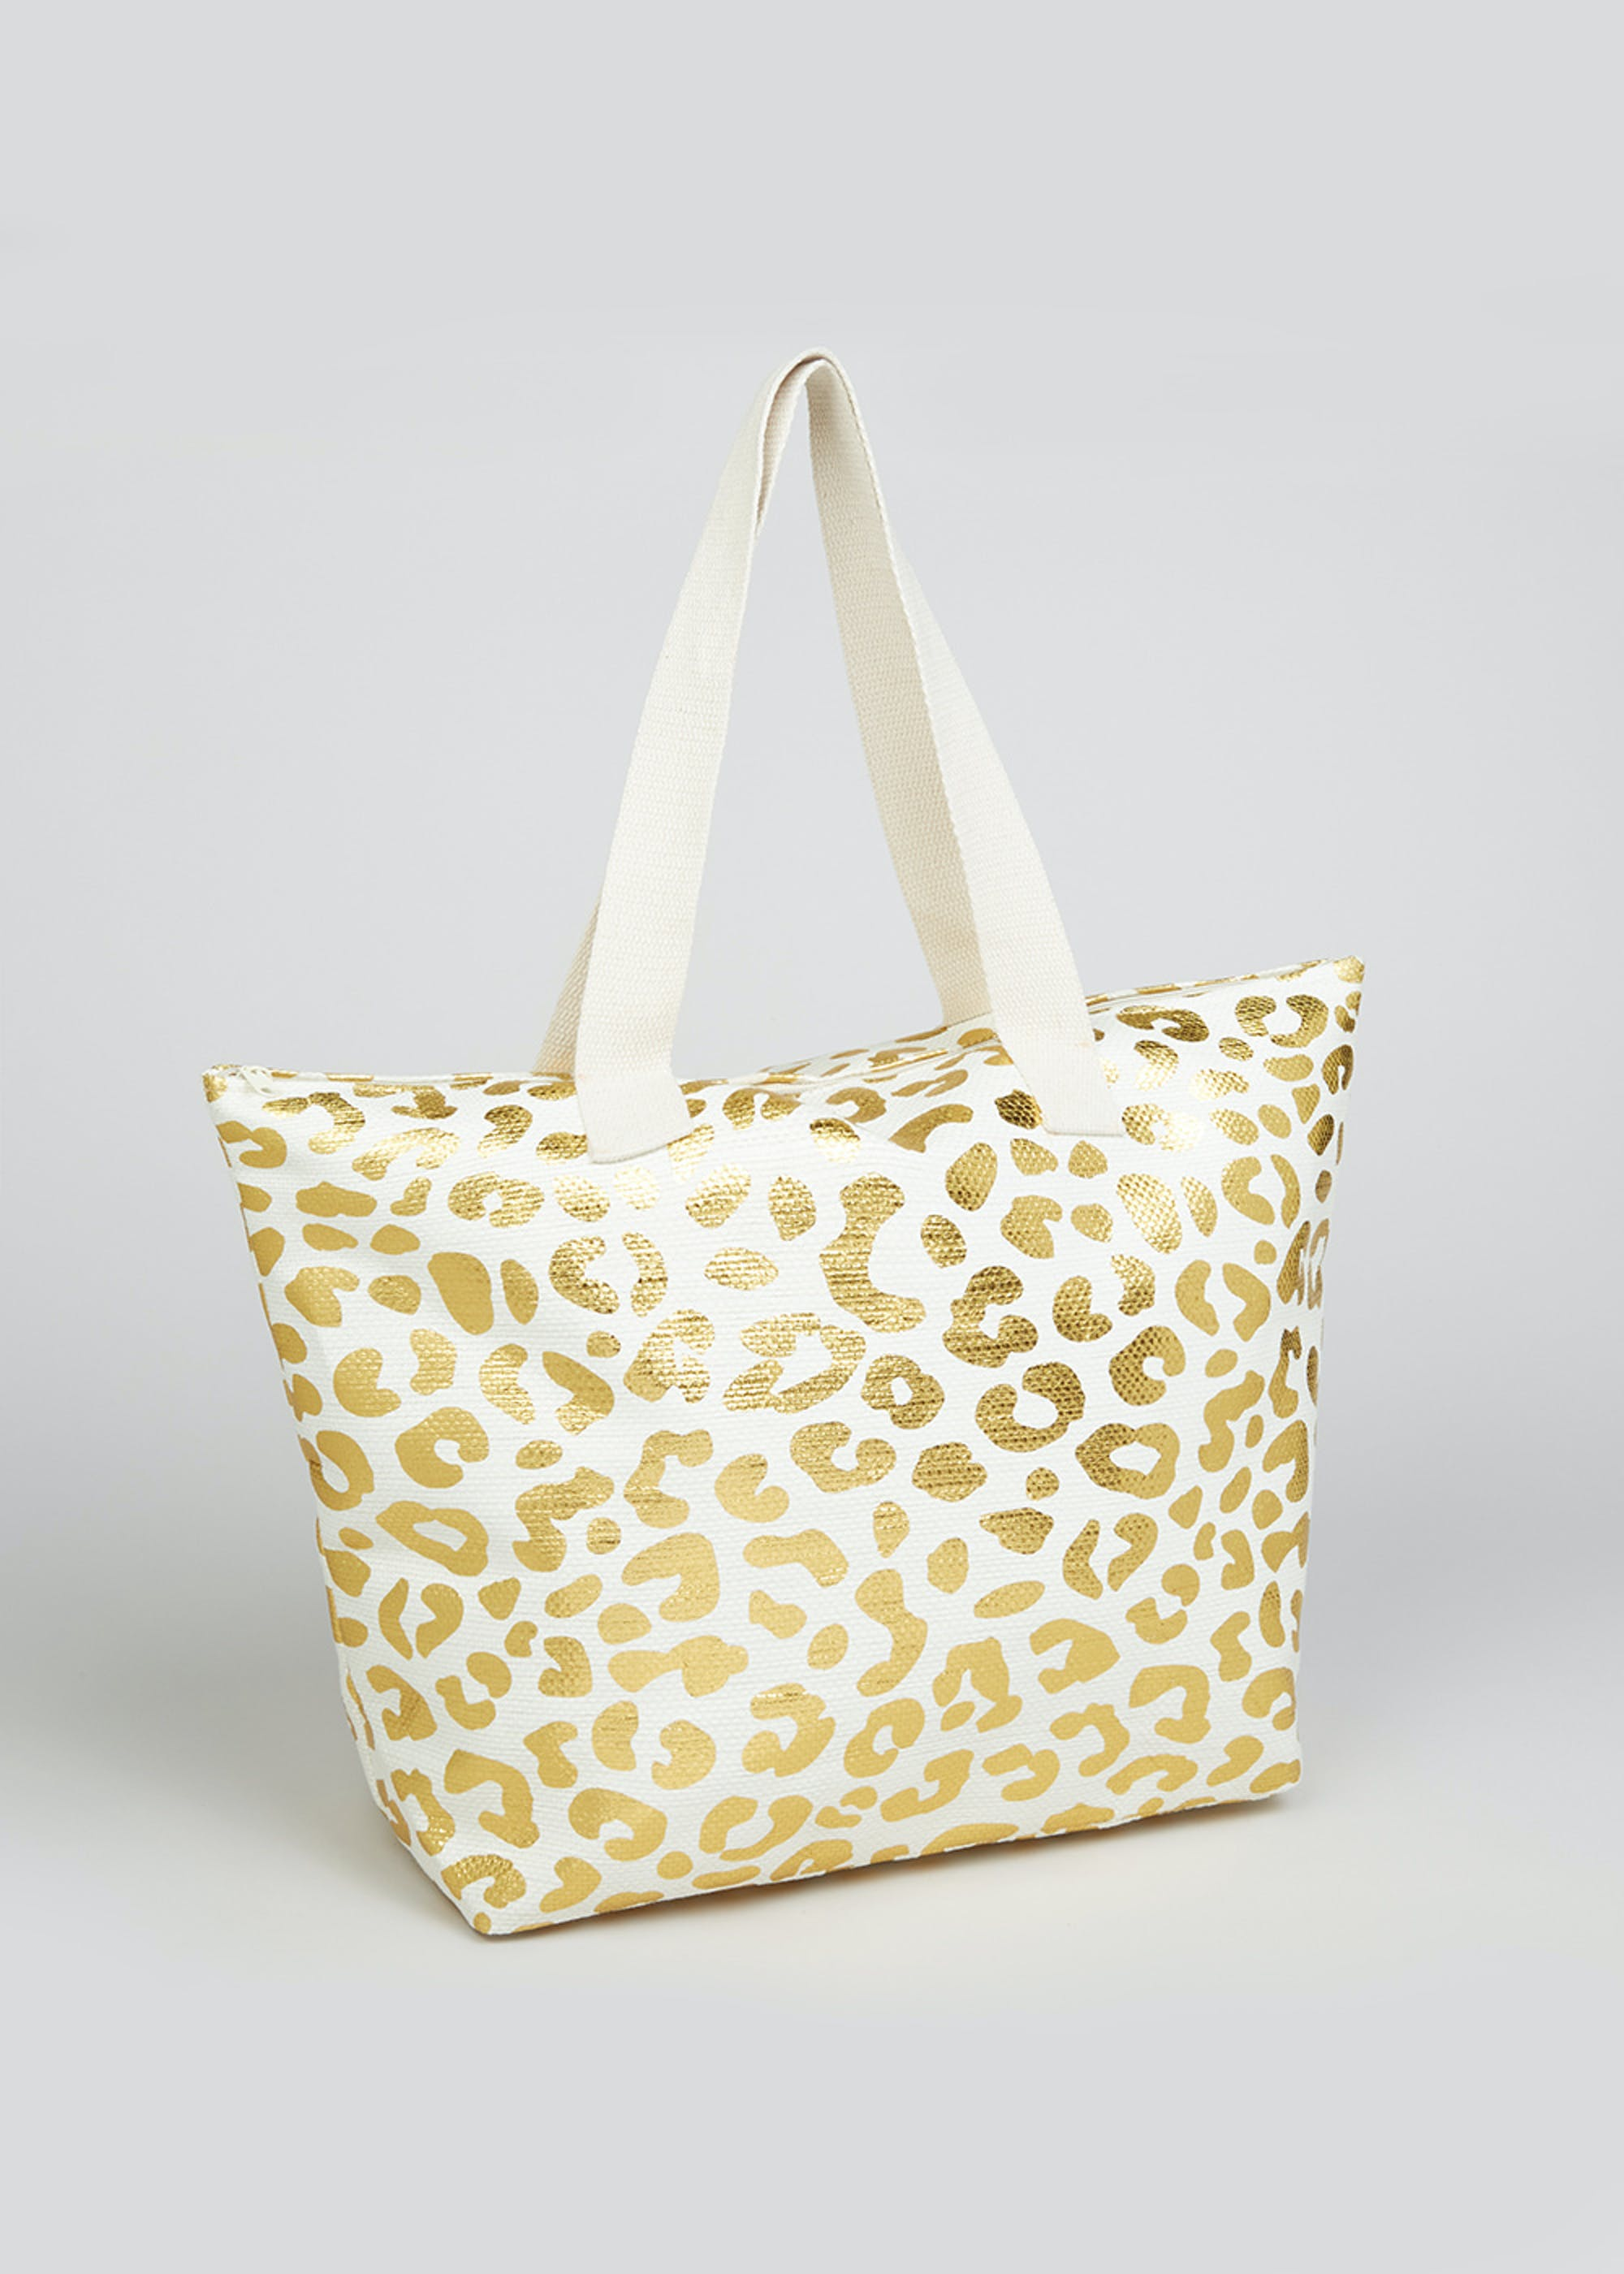 Metallic Leopard Print Beach Bag Gold xL8KwW